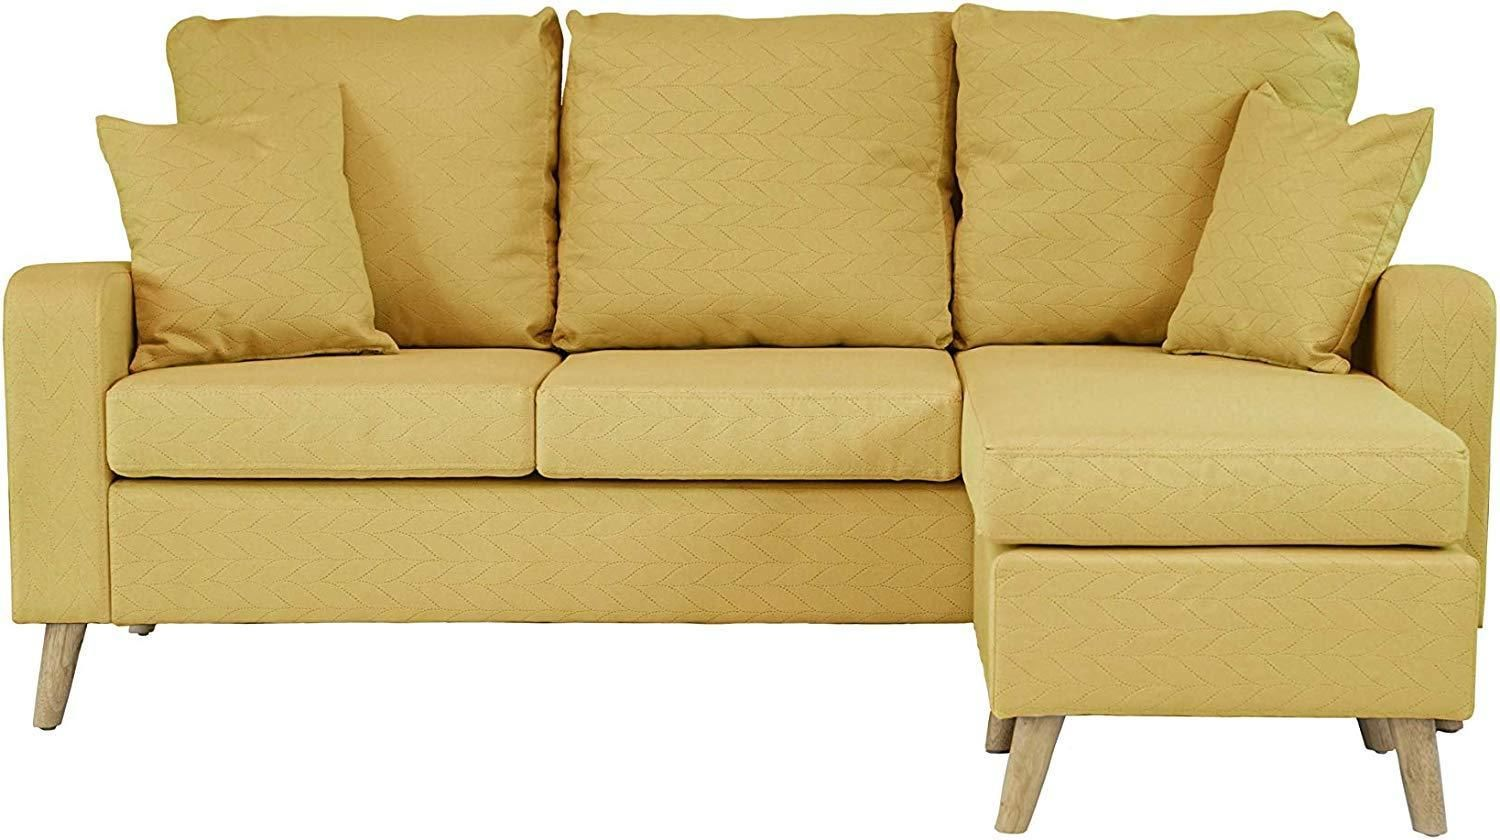 L Shaped Small Sectional Couch Yellow In 2020 Small Sectional Couch Small Sectional Couch